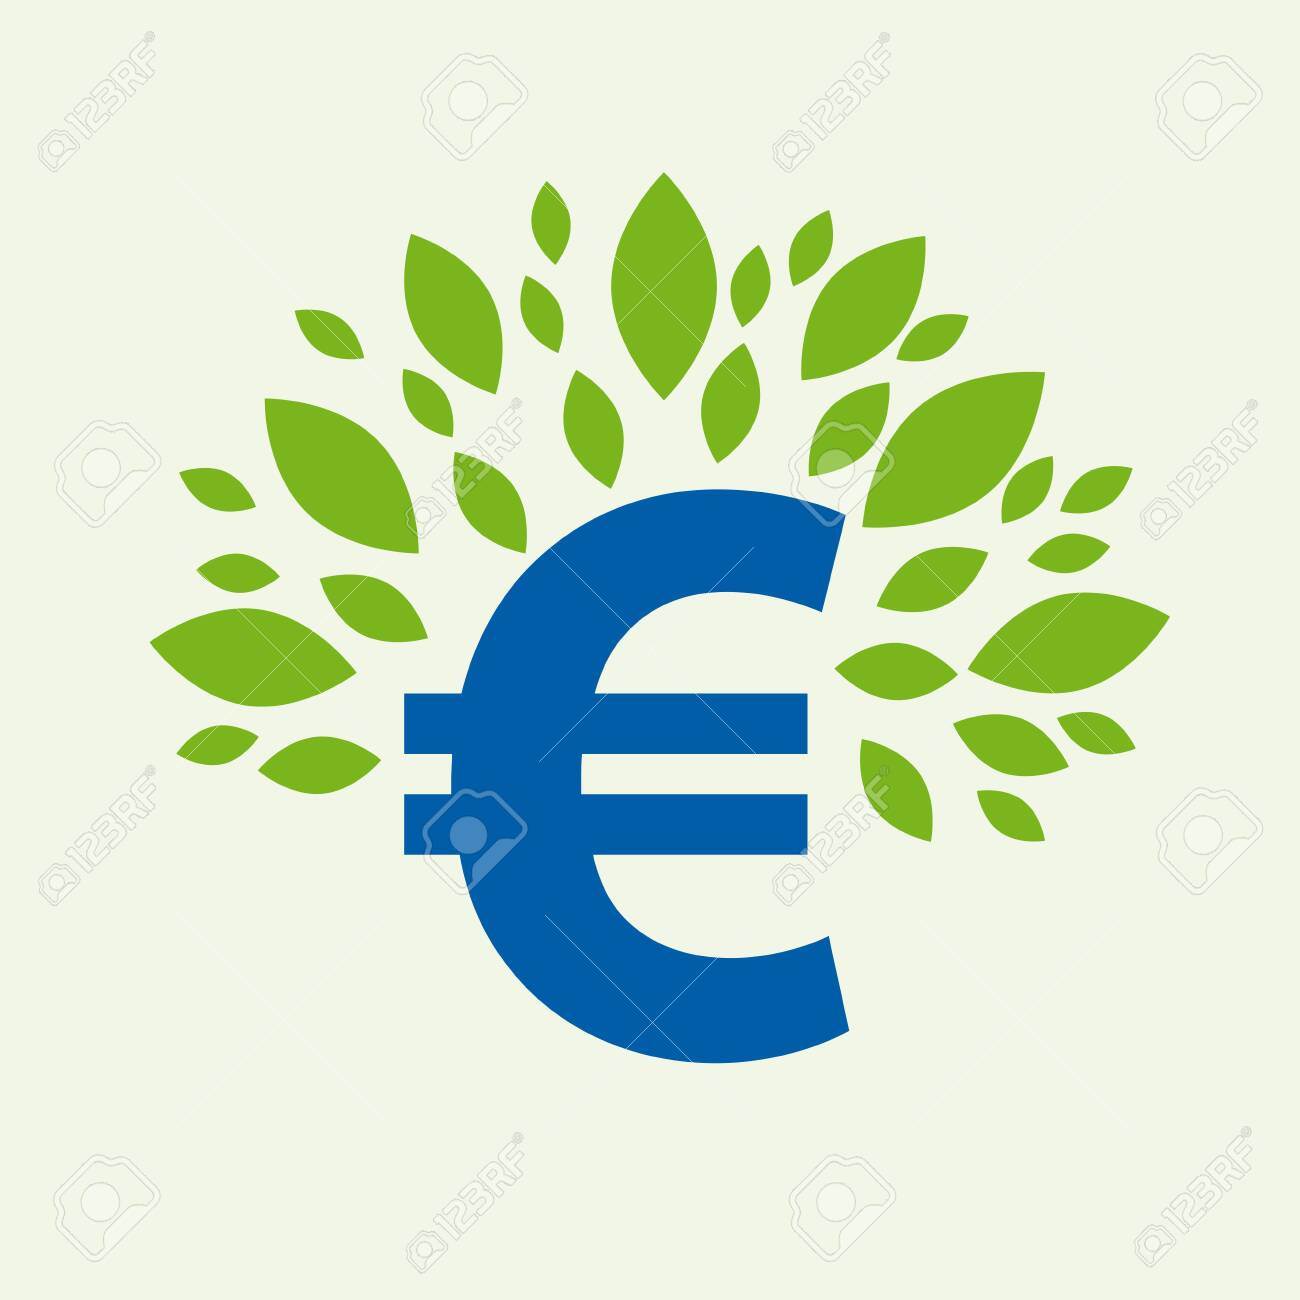 Green deal. Conceptual illustration with leaves and euro sign - 139631915